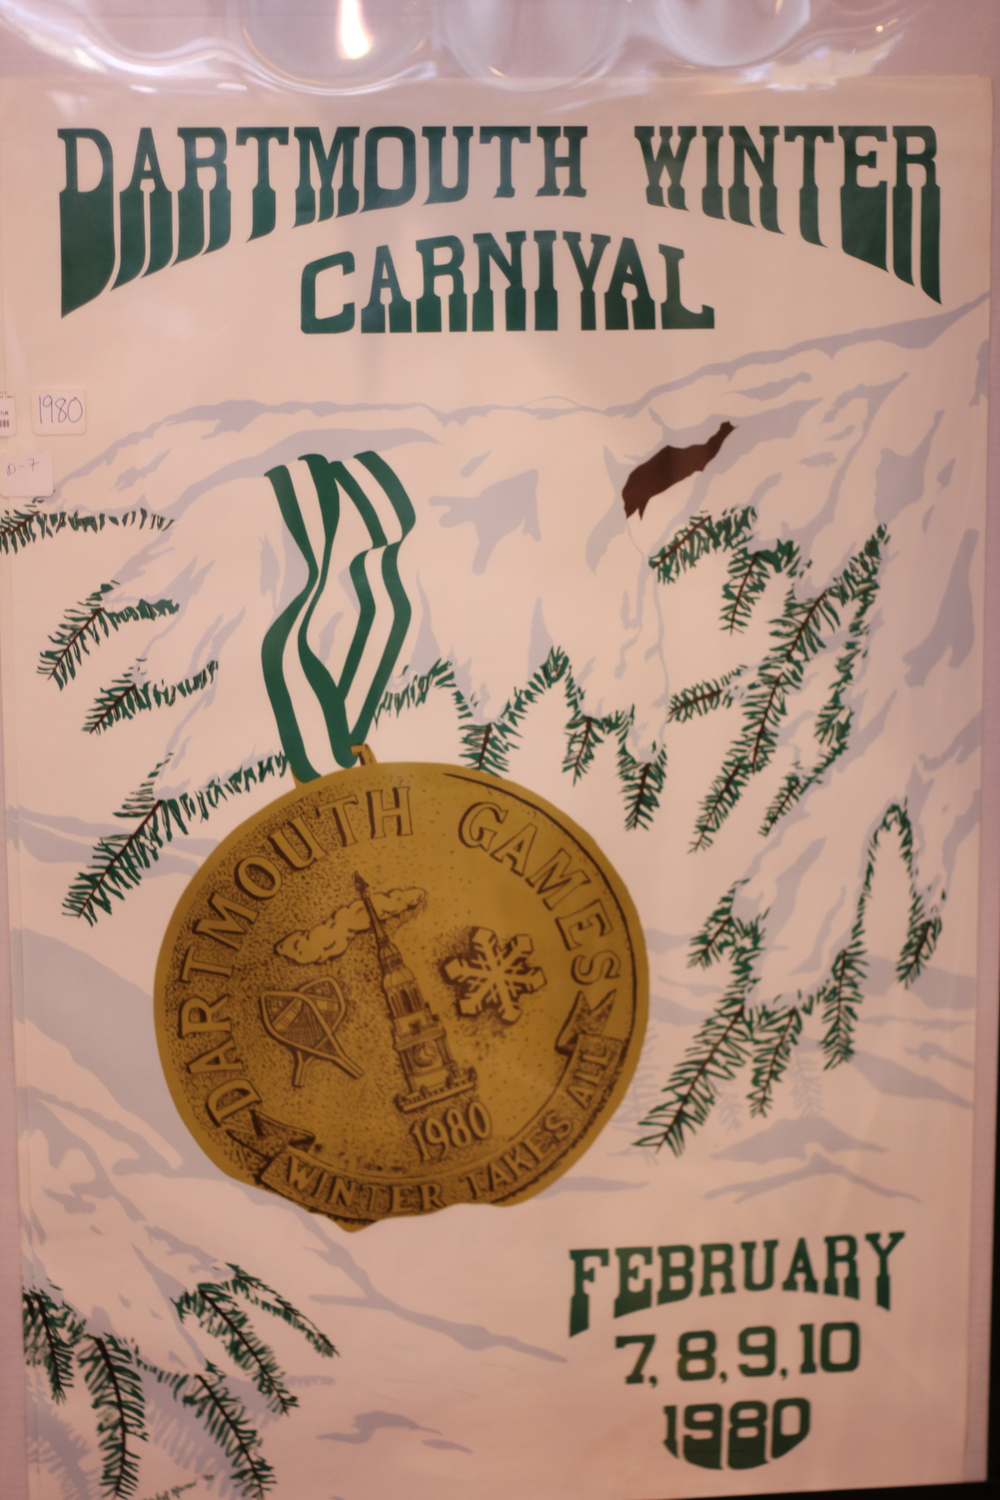 Dartmouth Winter Carnival 1980